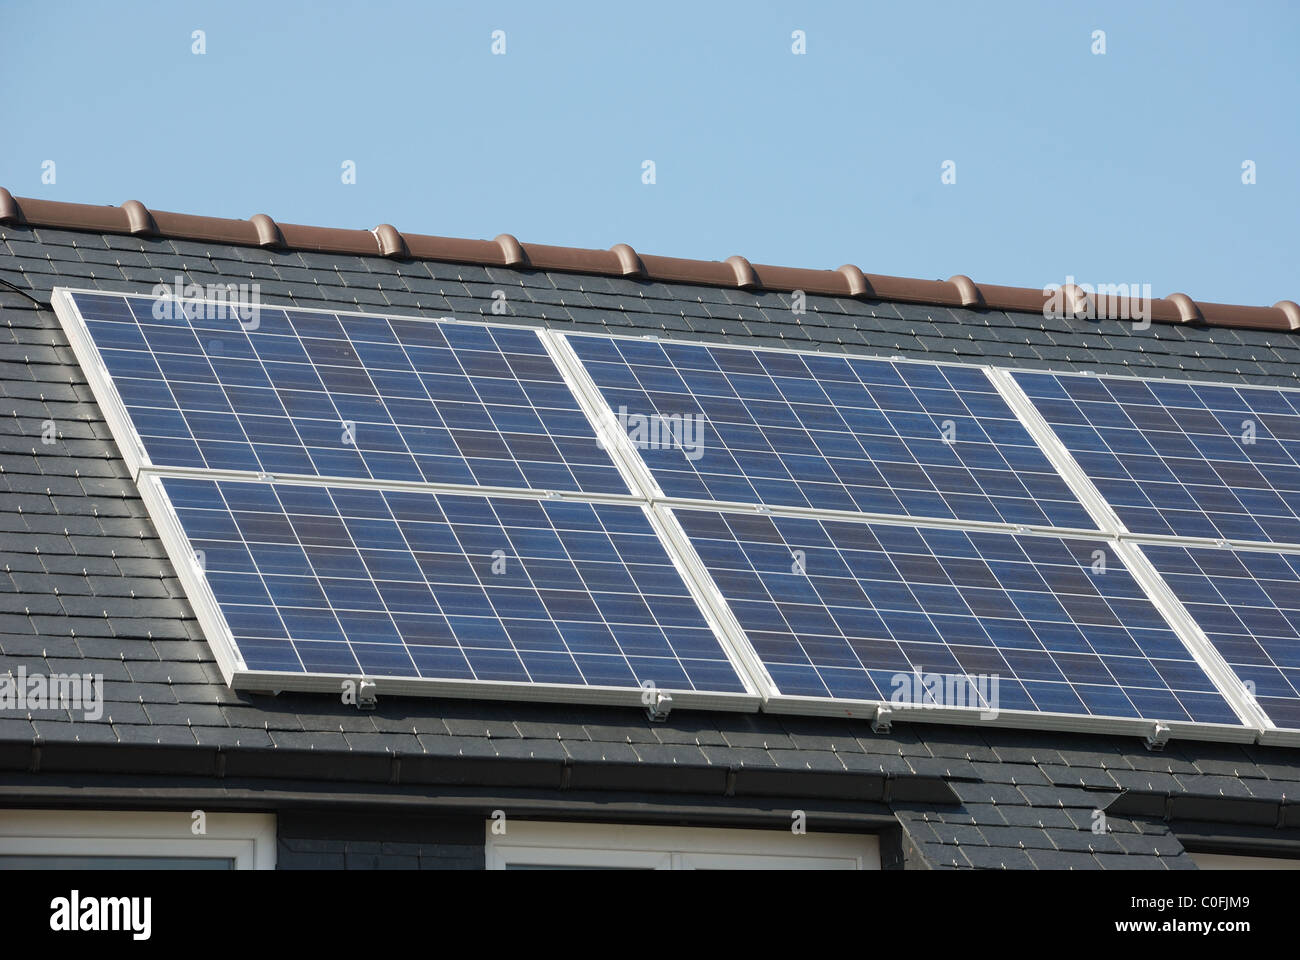 House with solar panels on roof - Stock Image